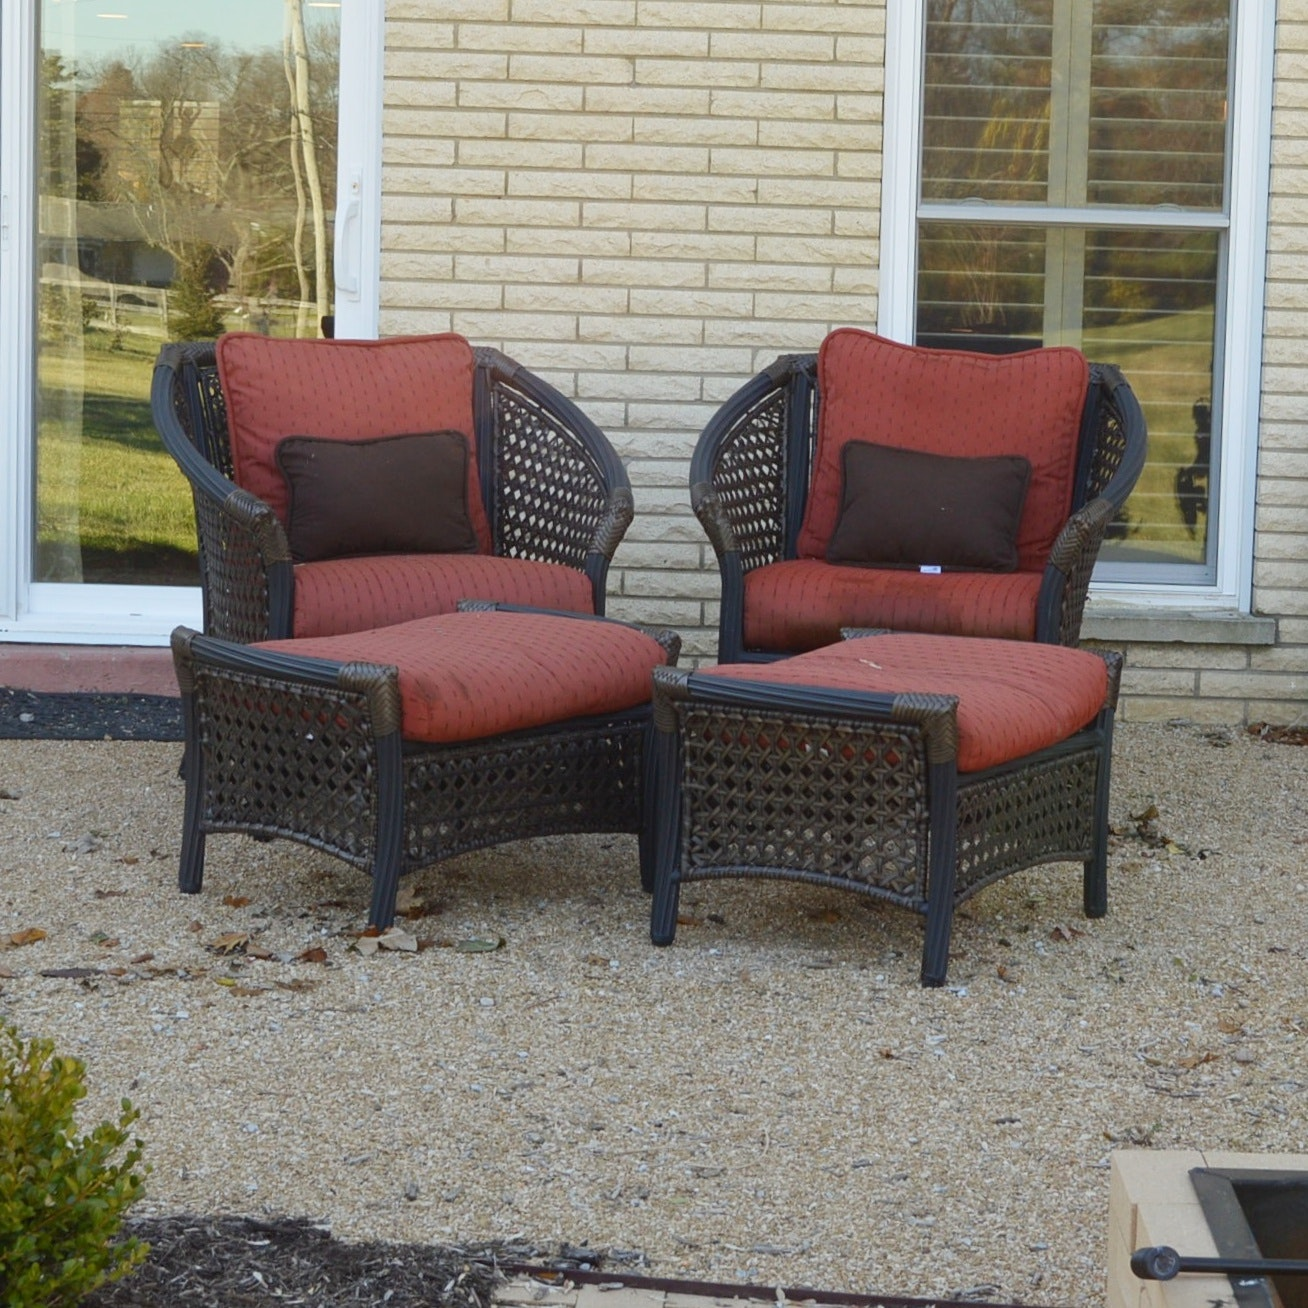 Weatherproof Wicker Outdoor Seating with Sunbrela Cushions